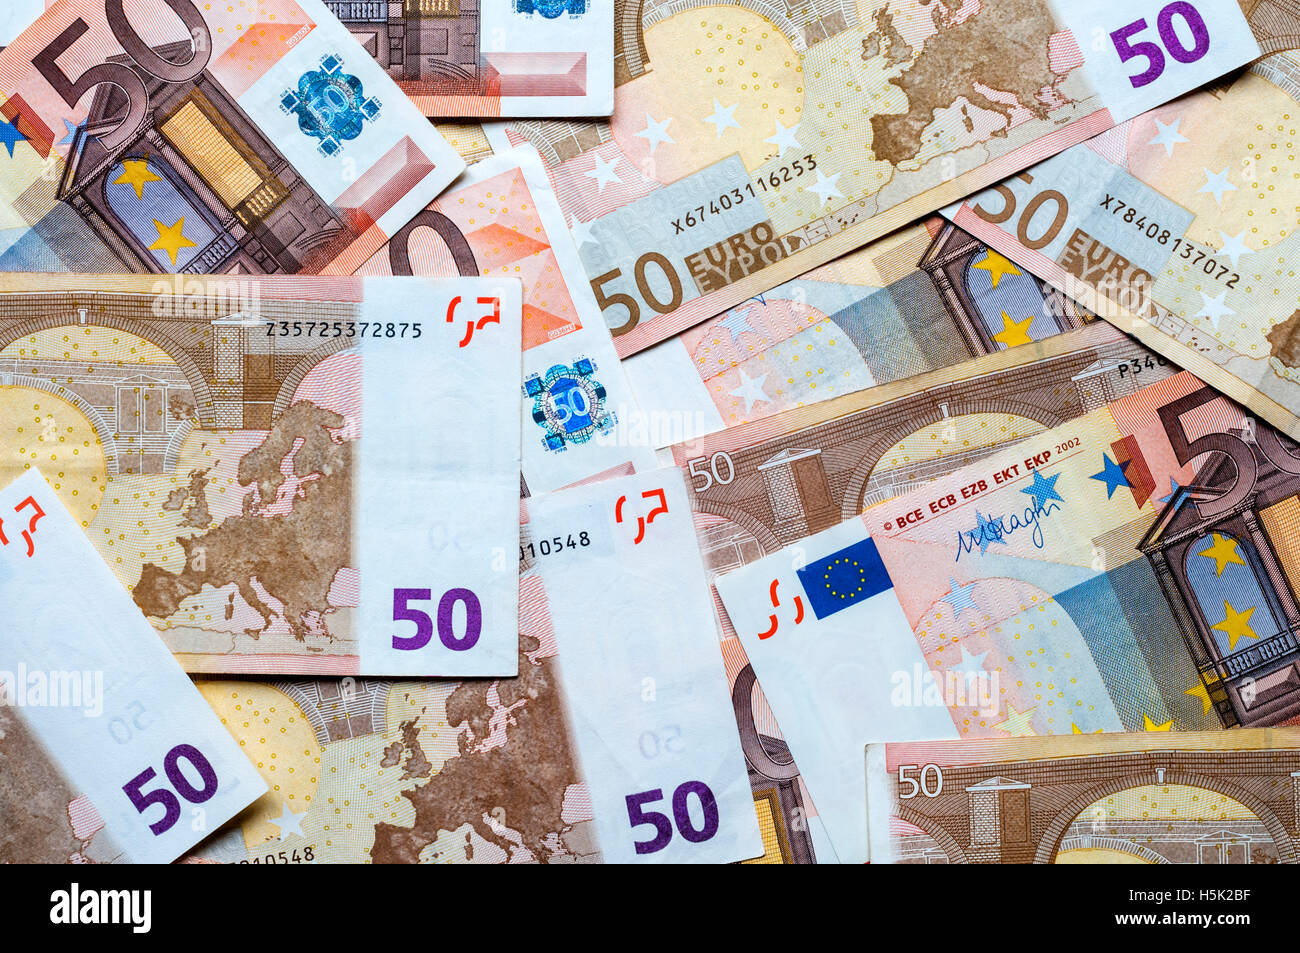 A pile of European €50 (Fifty Euro)  notes. - Stock Image